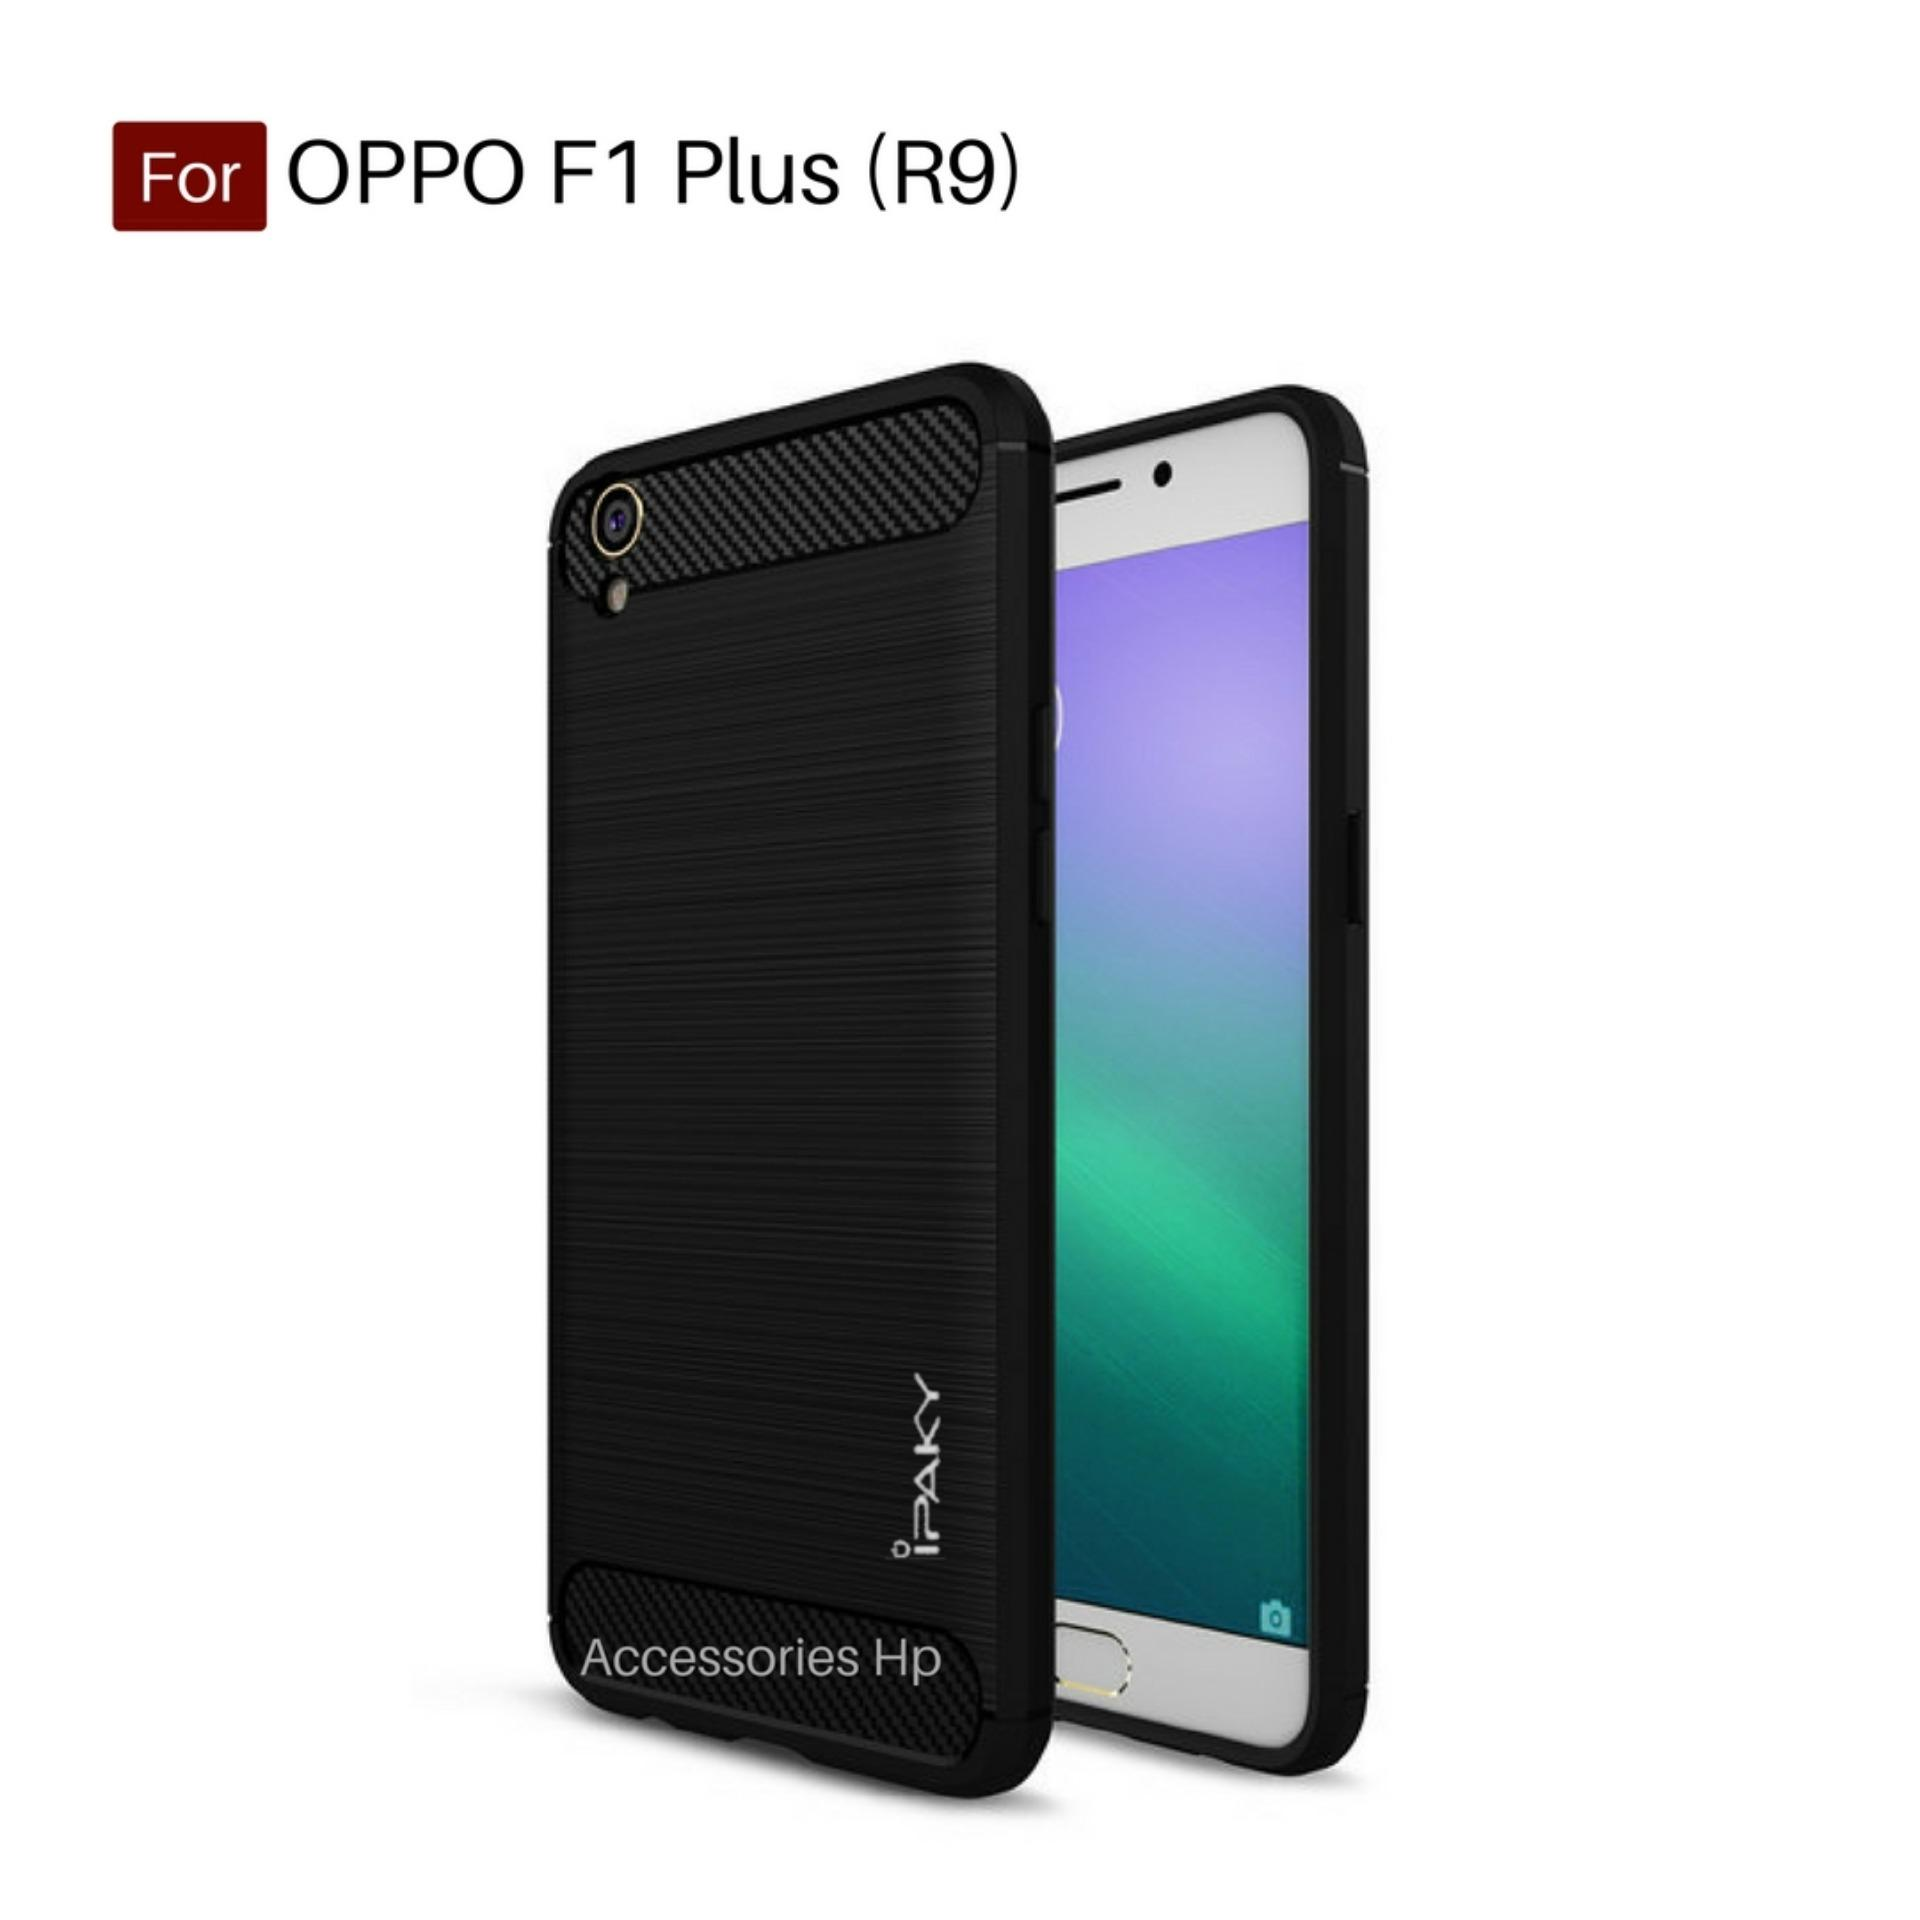 Accessories HP Premium Quality Carbon Shockproof Hybrid Case For OPPO F1 Plus (R9) - Black